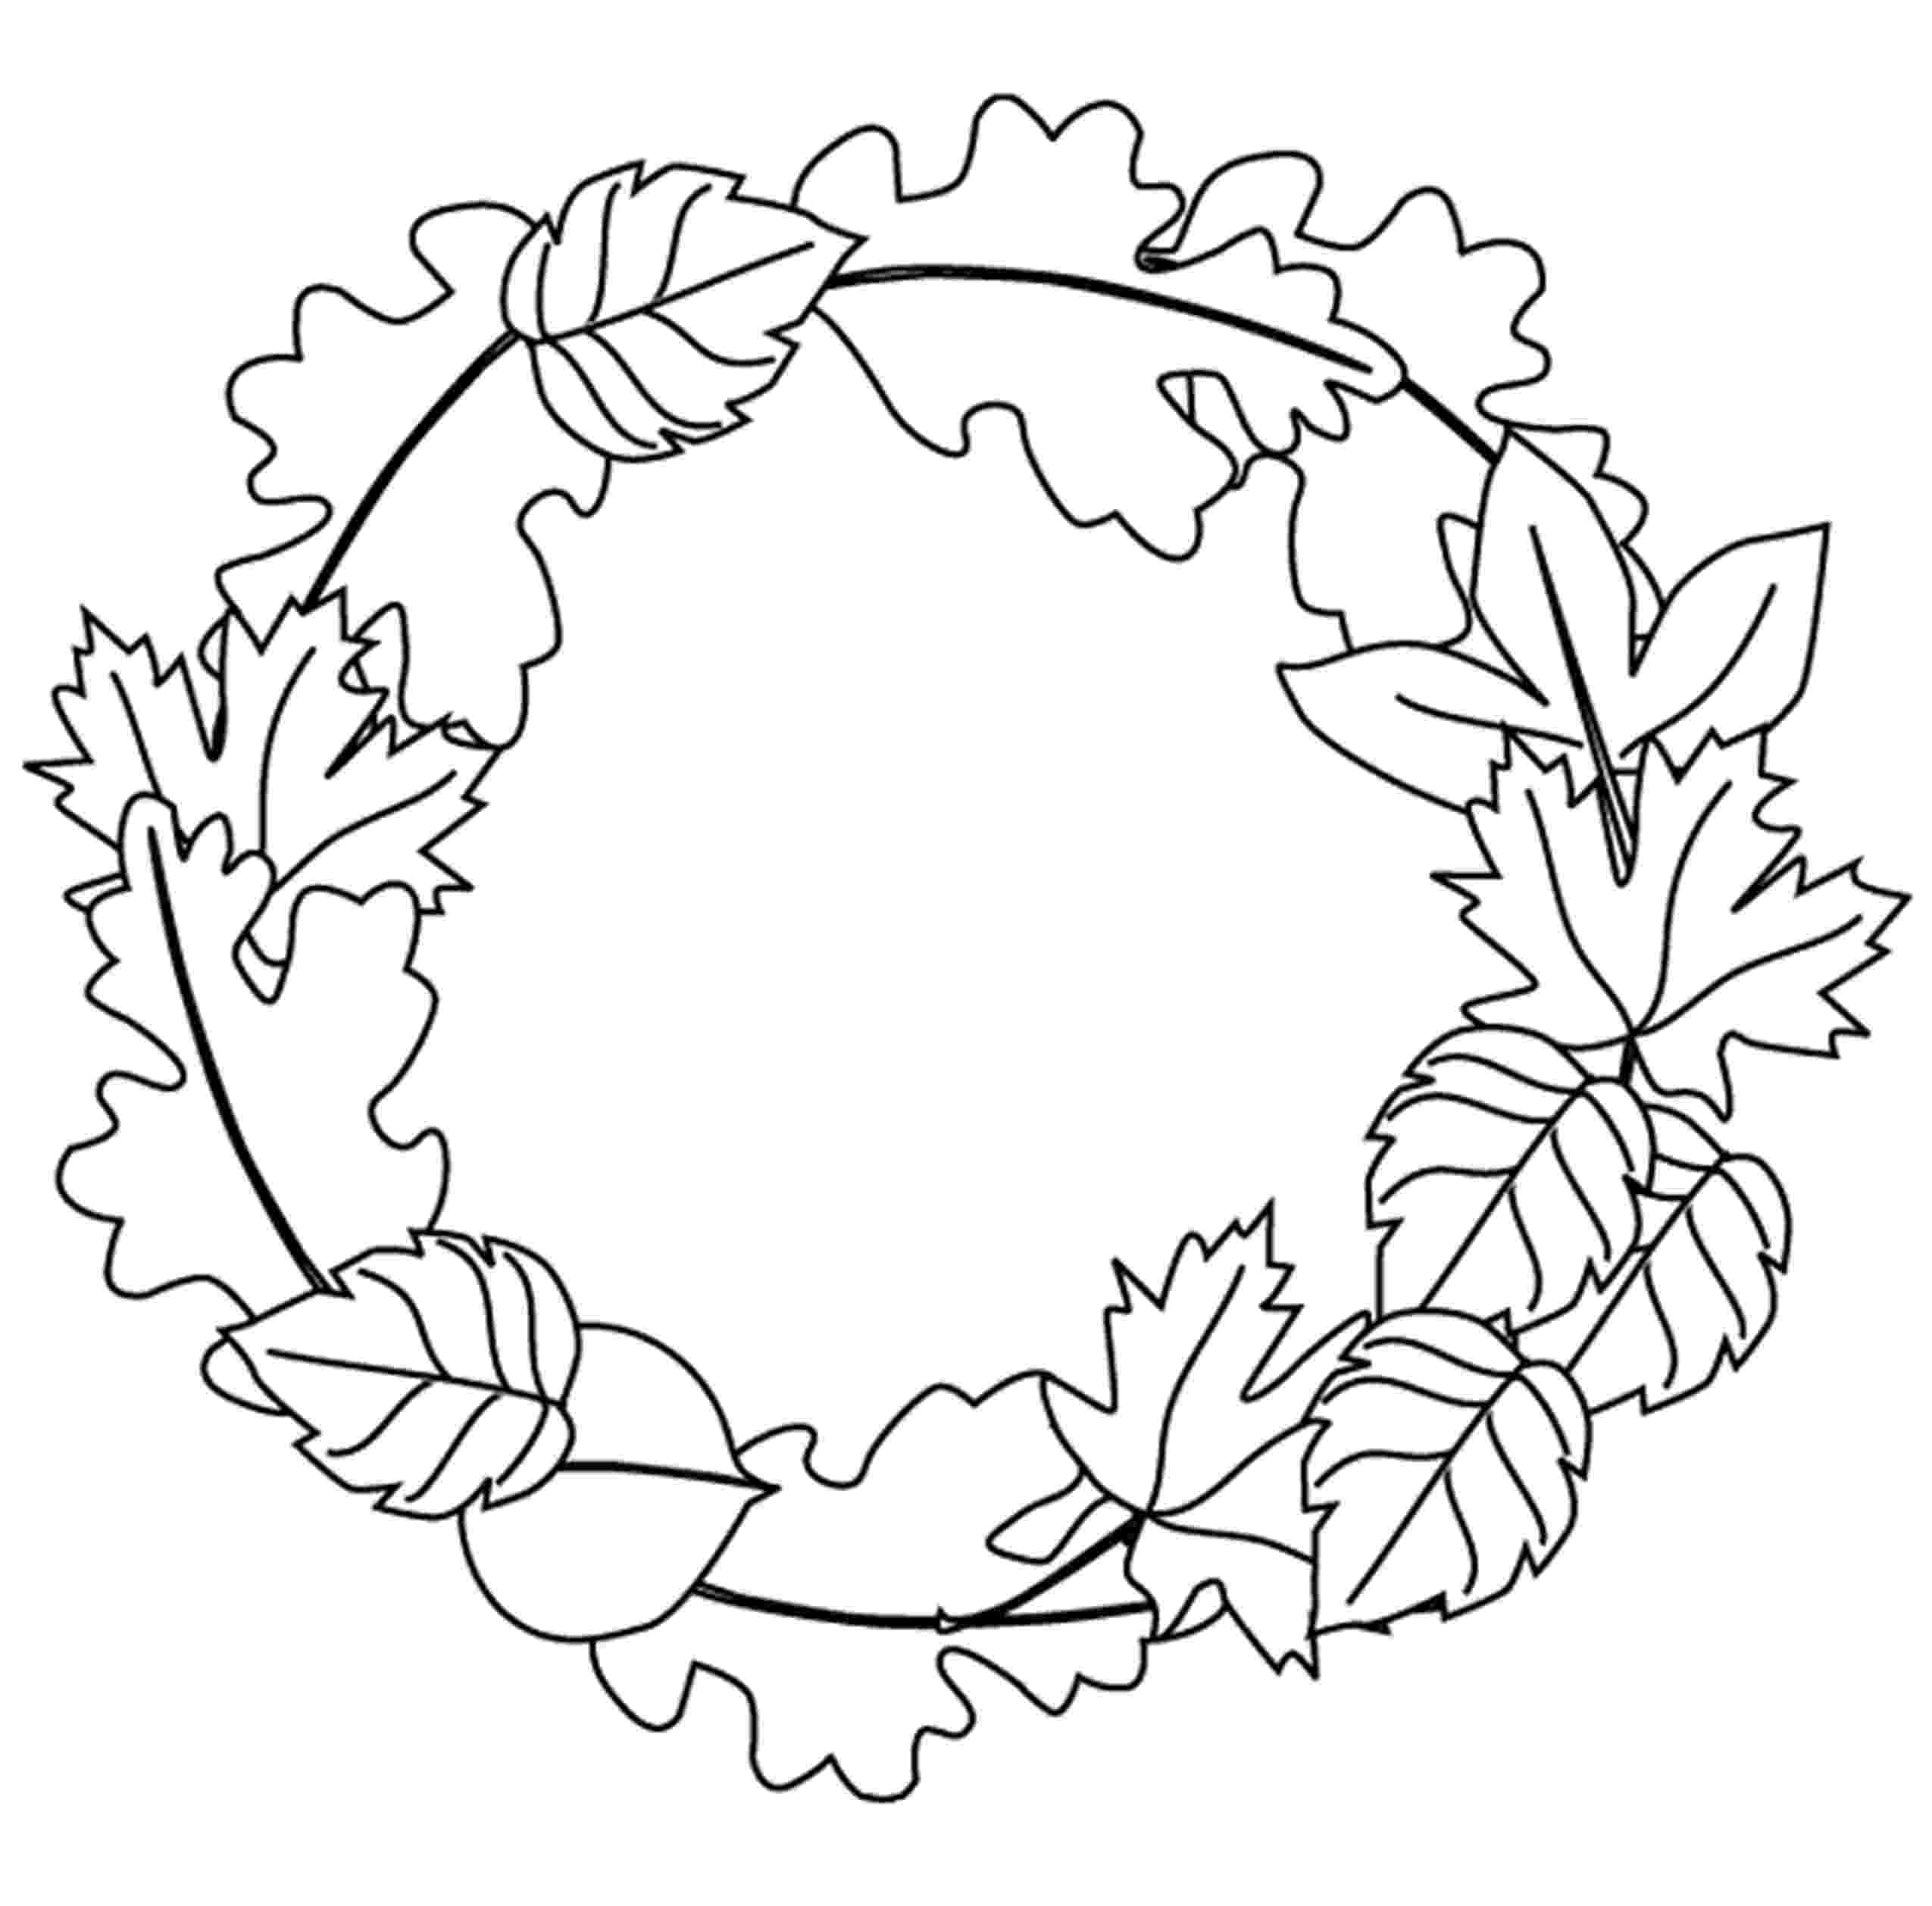 coloring pages fall leaves 304 best coloring autumn thanksgiving images on pages fall leaves coloring